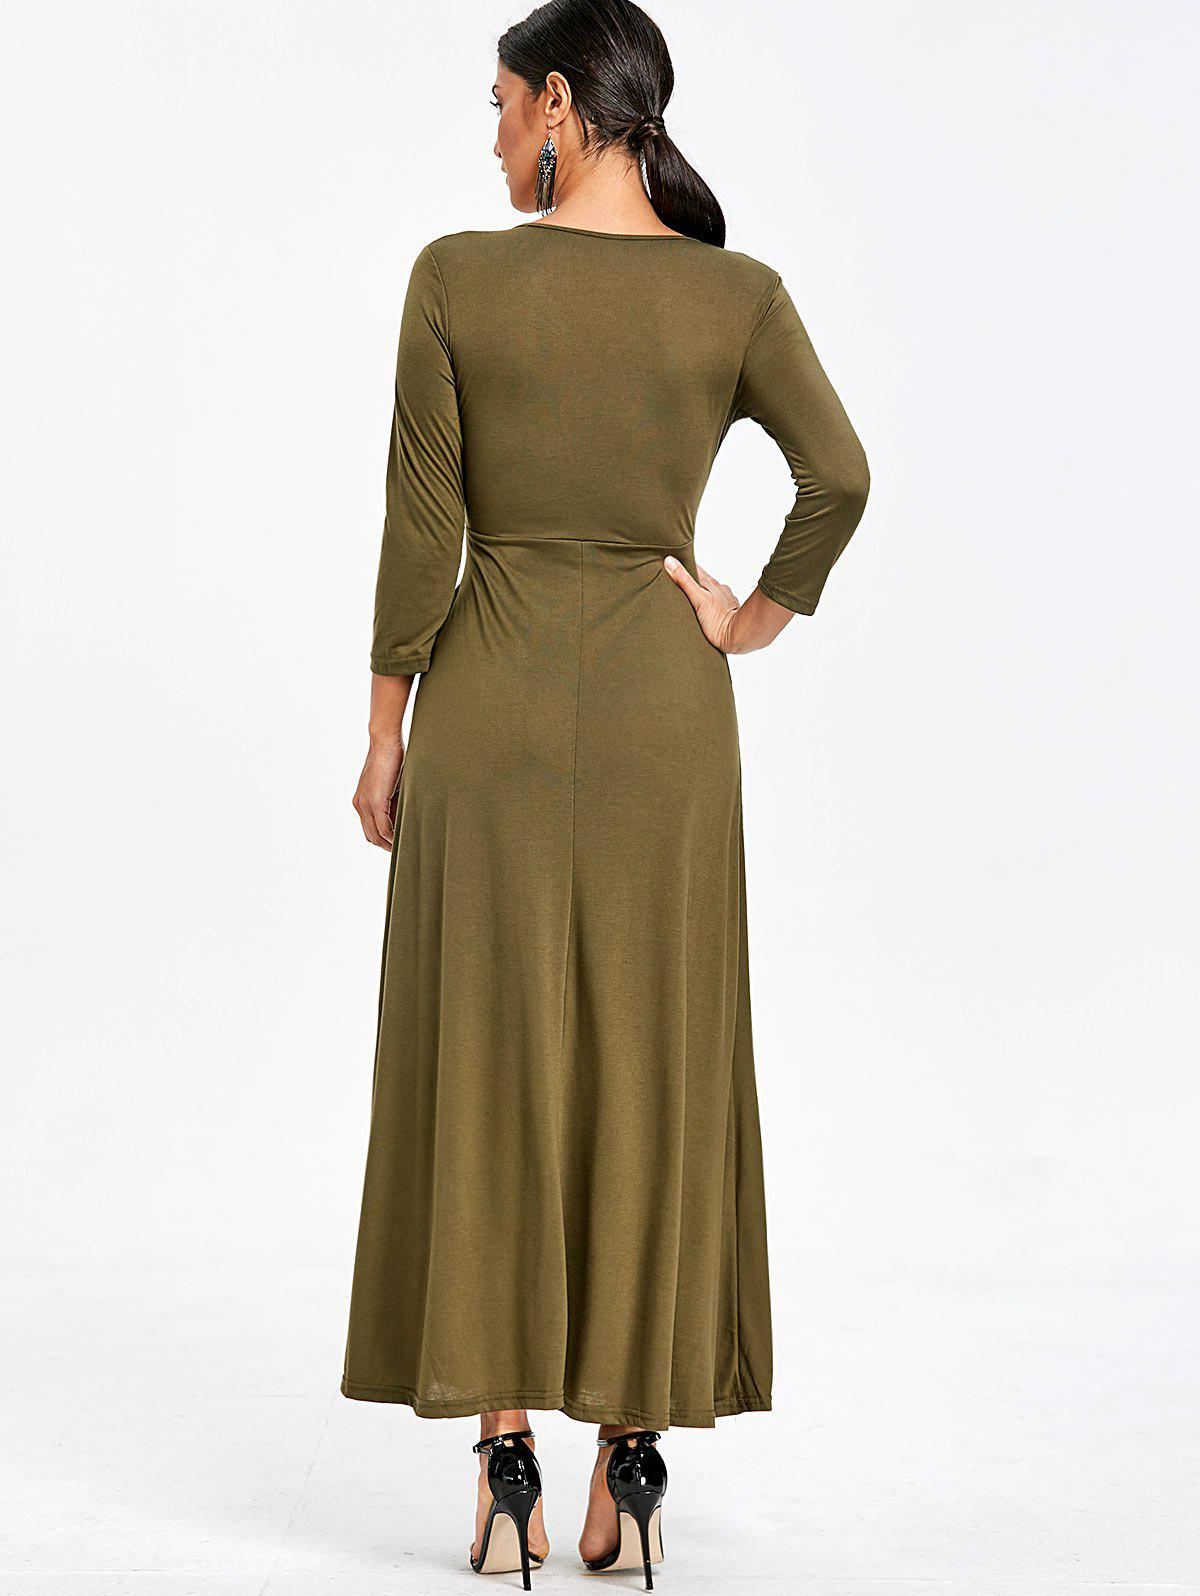 V Neck Empire Waist Maxi Dress - ARMY GREEN XL